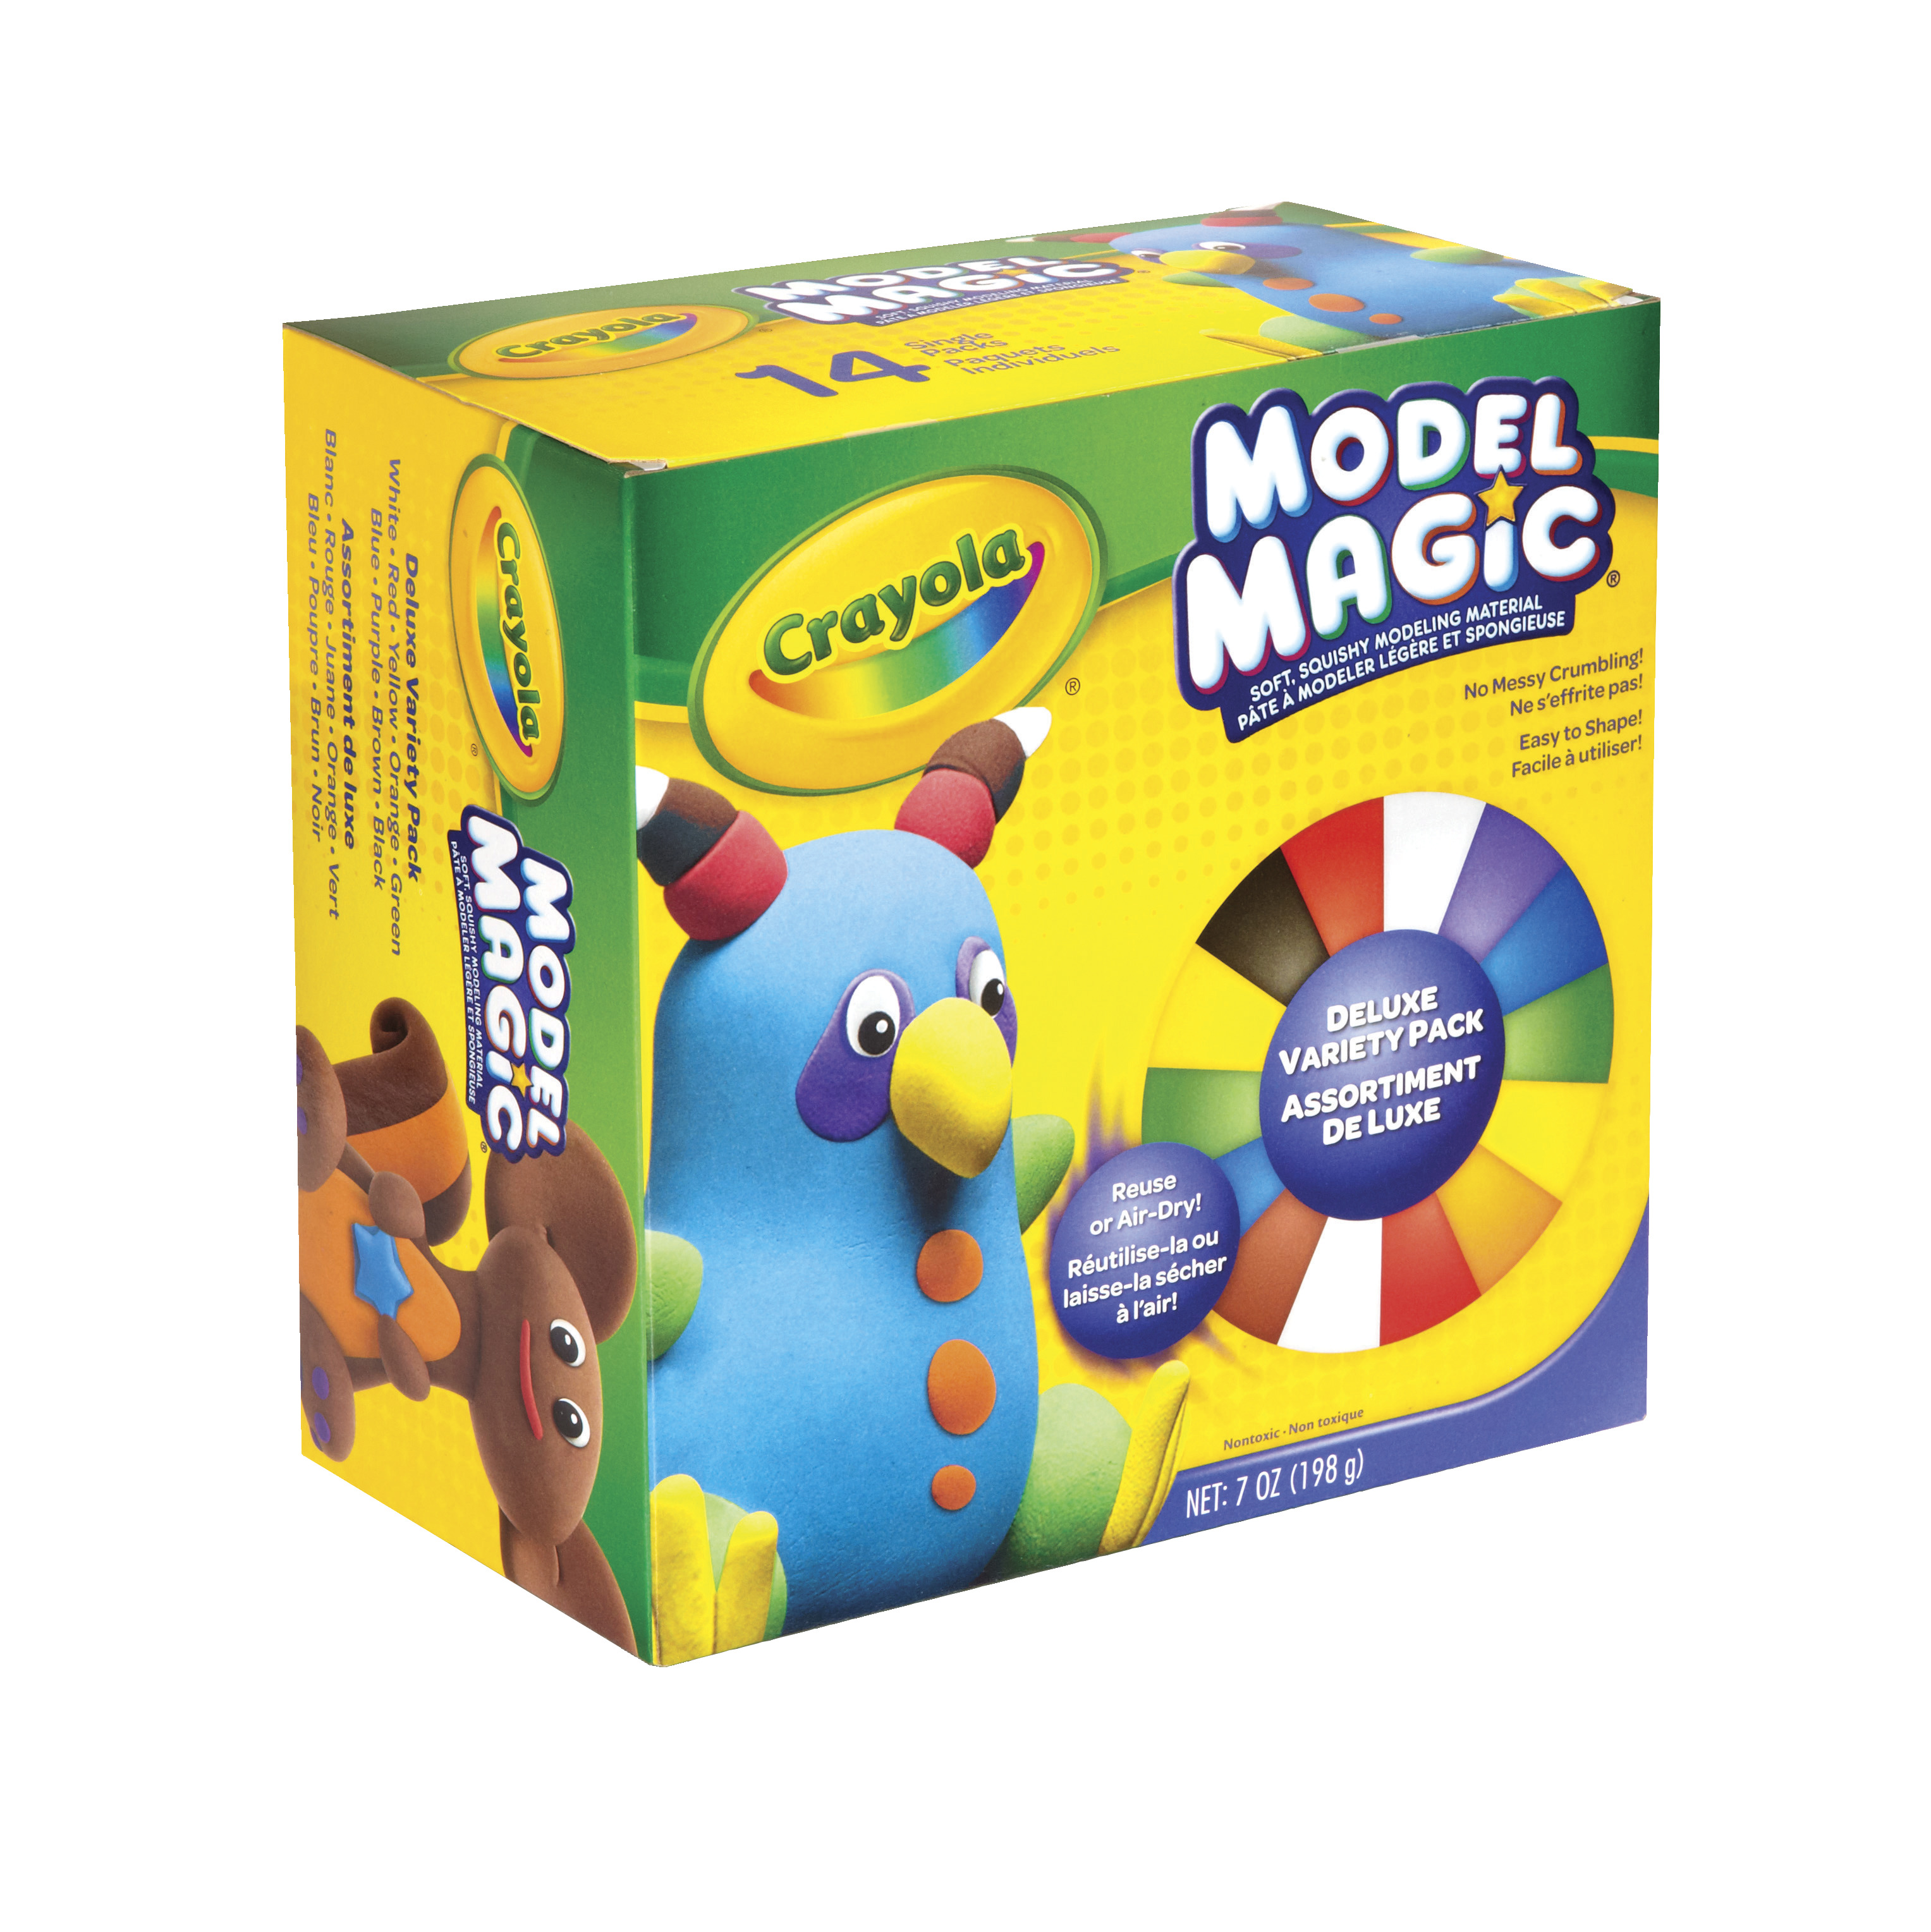 Crayola Model Magic Non-Toxic Modeling Dough Deluxe Variety Pack, 7 oz, Assorted Color, Pack of 14